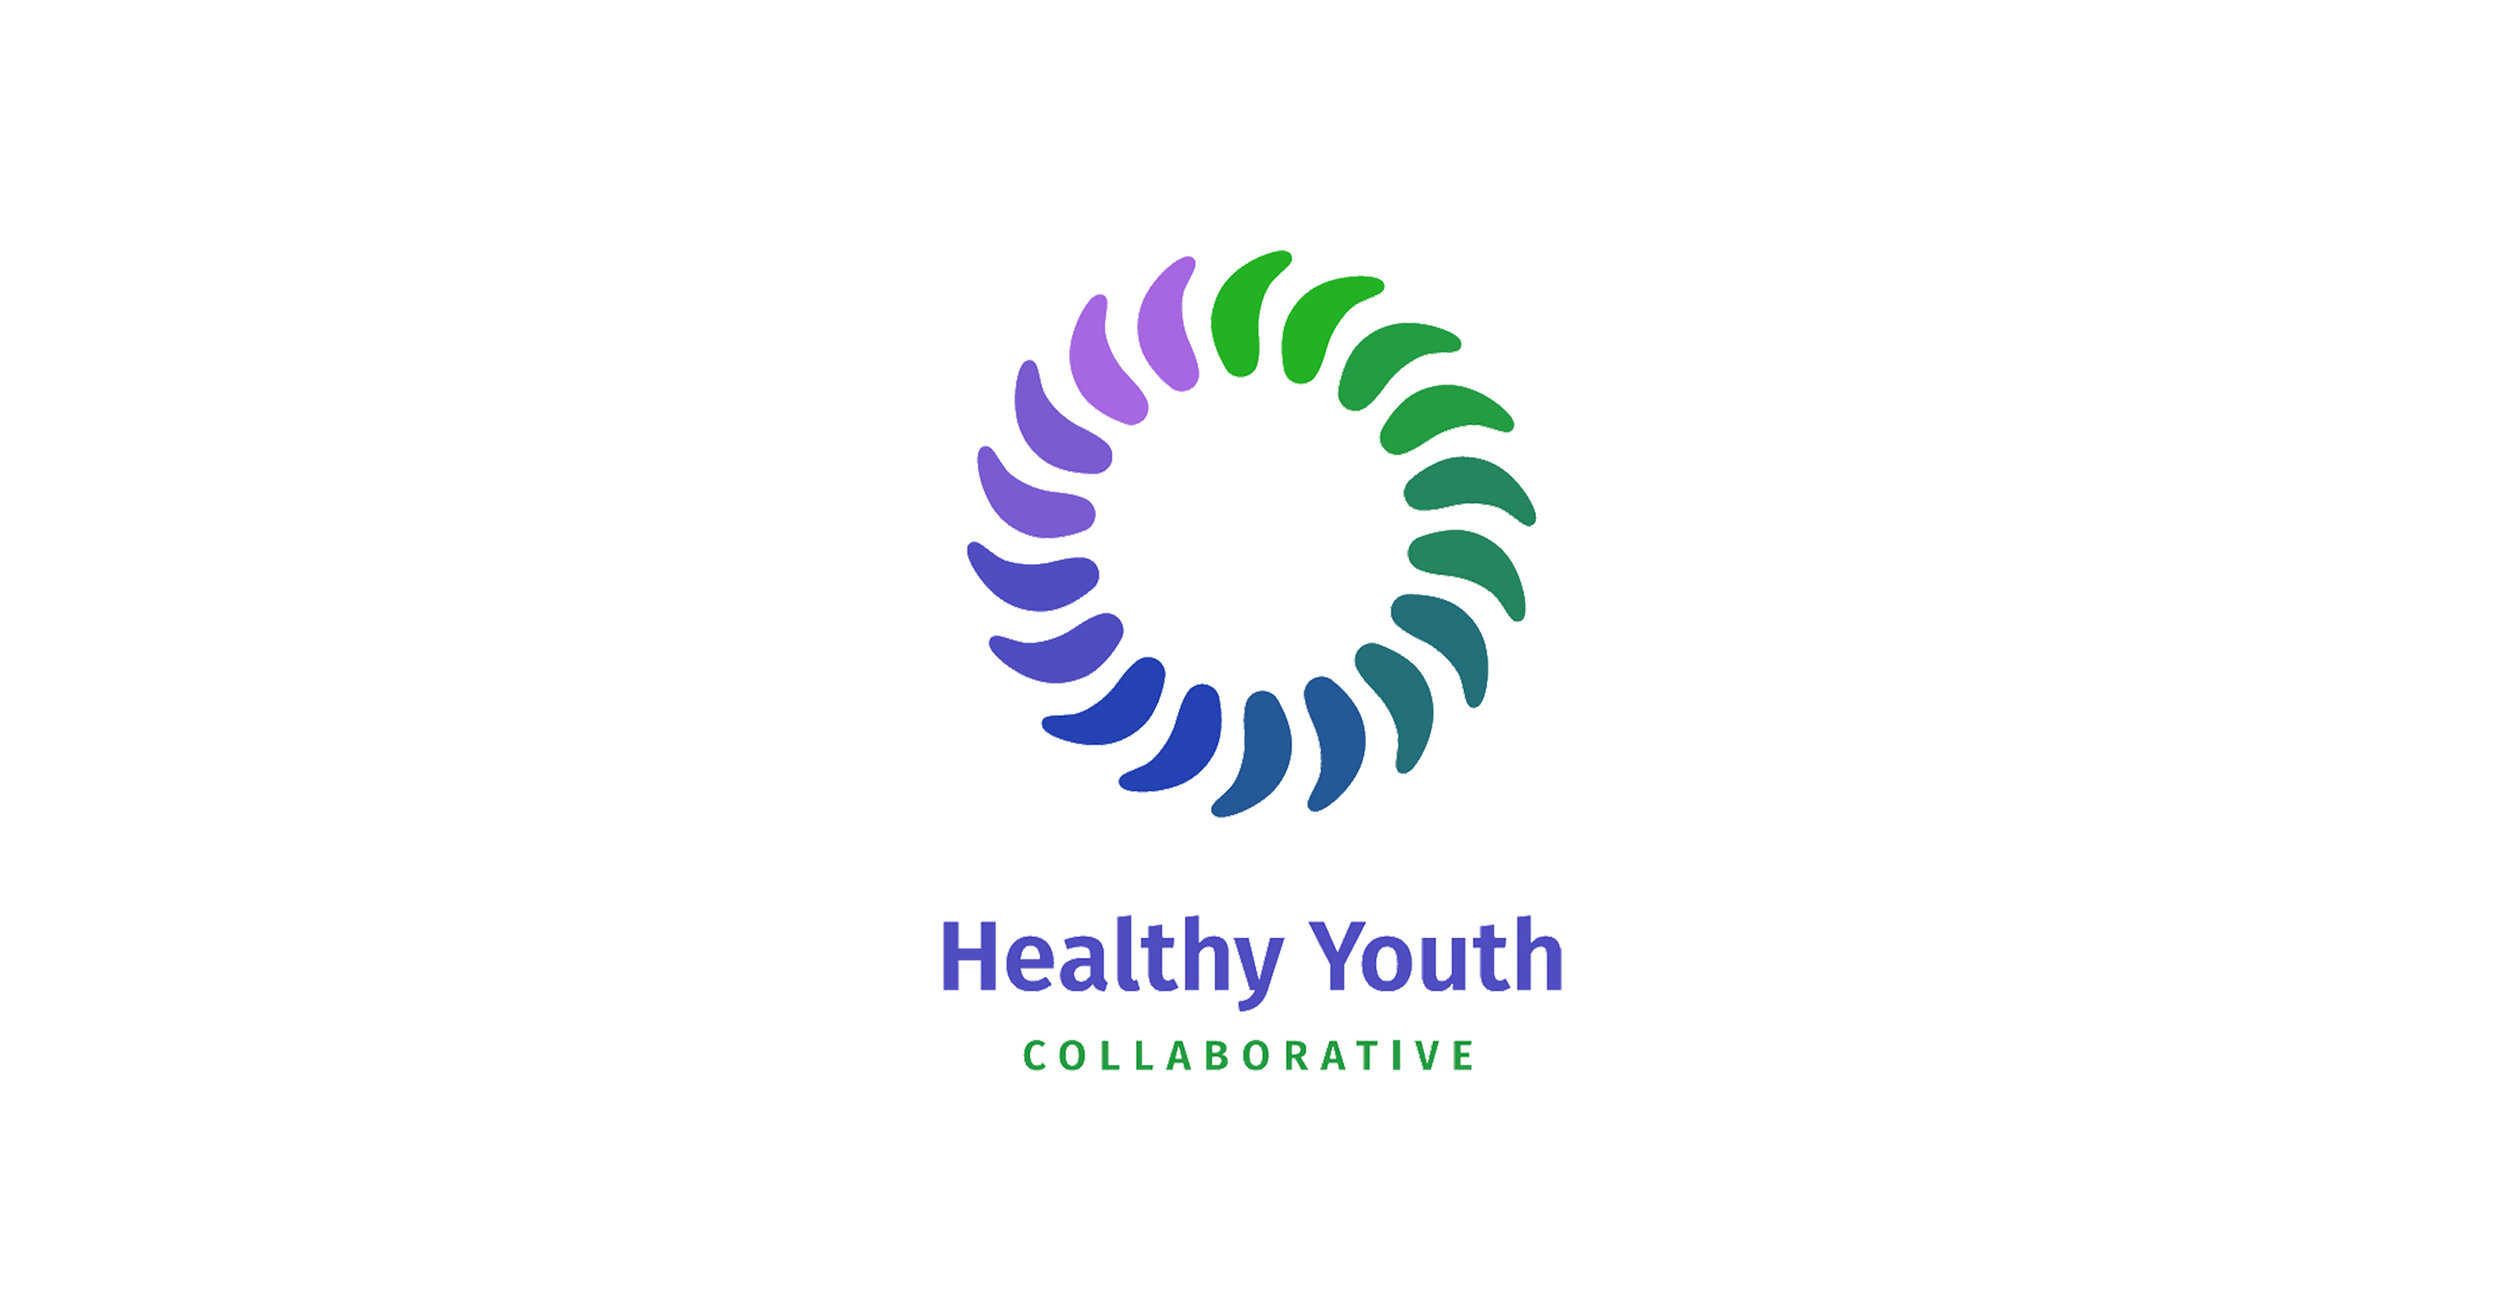 WBCG_HealthyYouth_Logo1.jpg